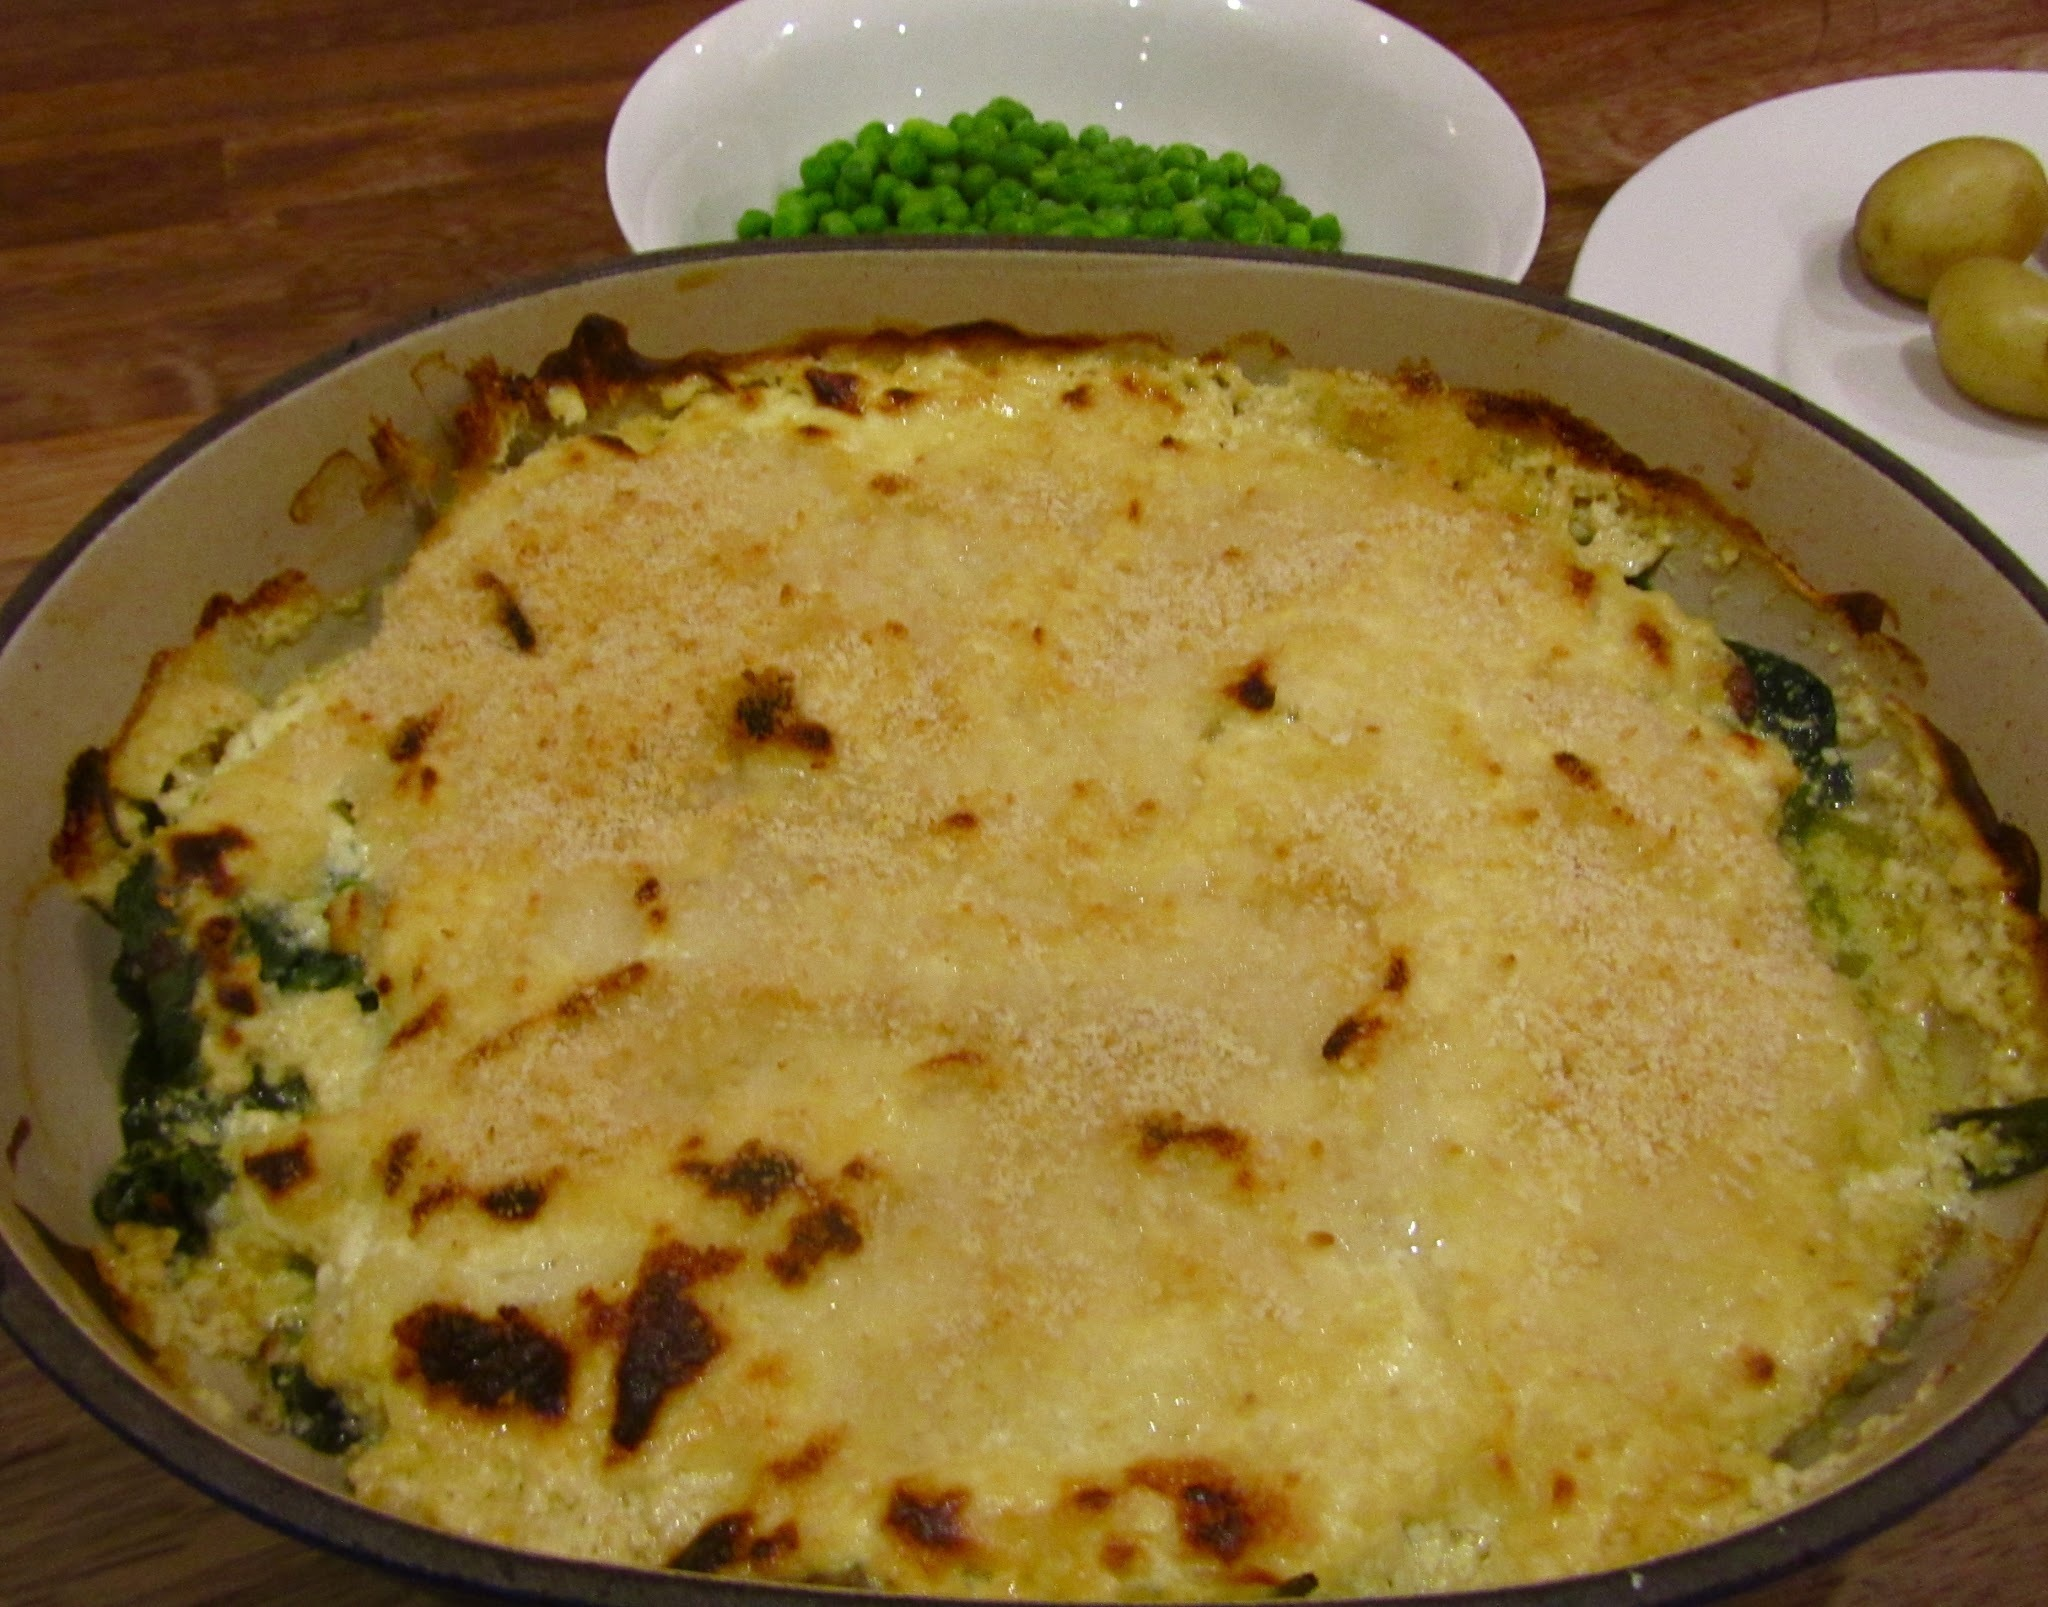 Quick Smoked Haddock and Spinach Gratin